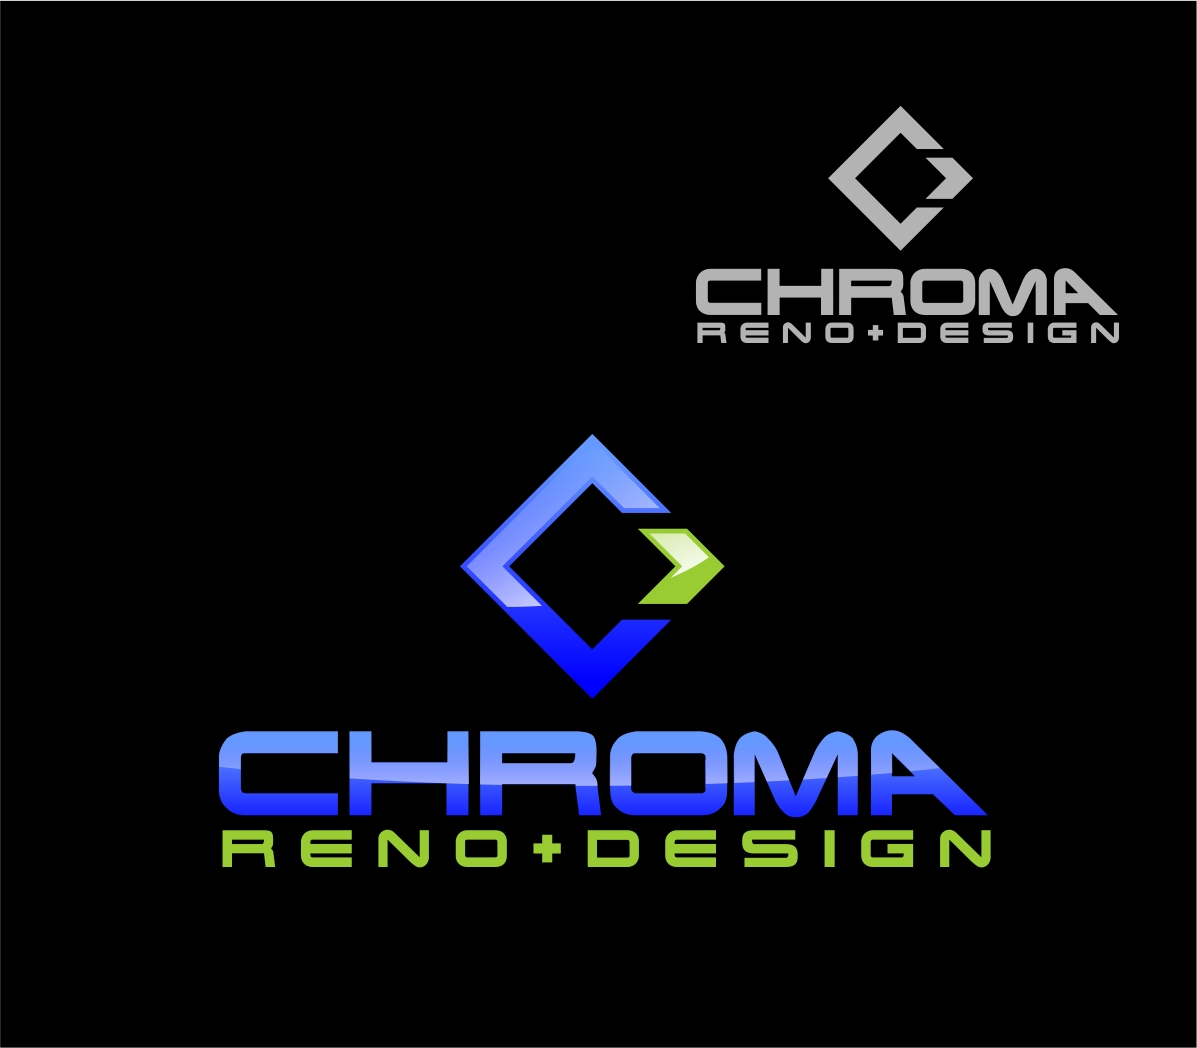 Logo Design by Reivan Ferdinan - Entry No. 297 in the Logo Design Contest Inspiring Logo Design for Chroma Reno+Design.